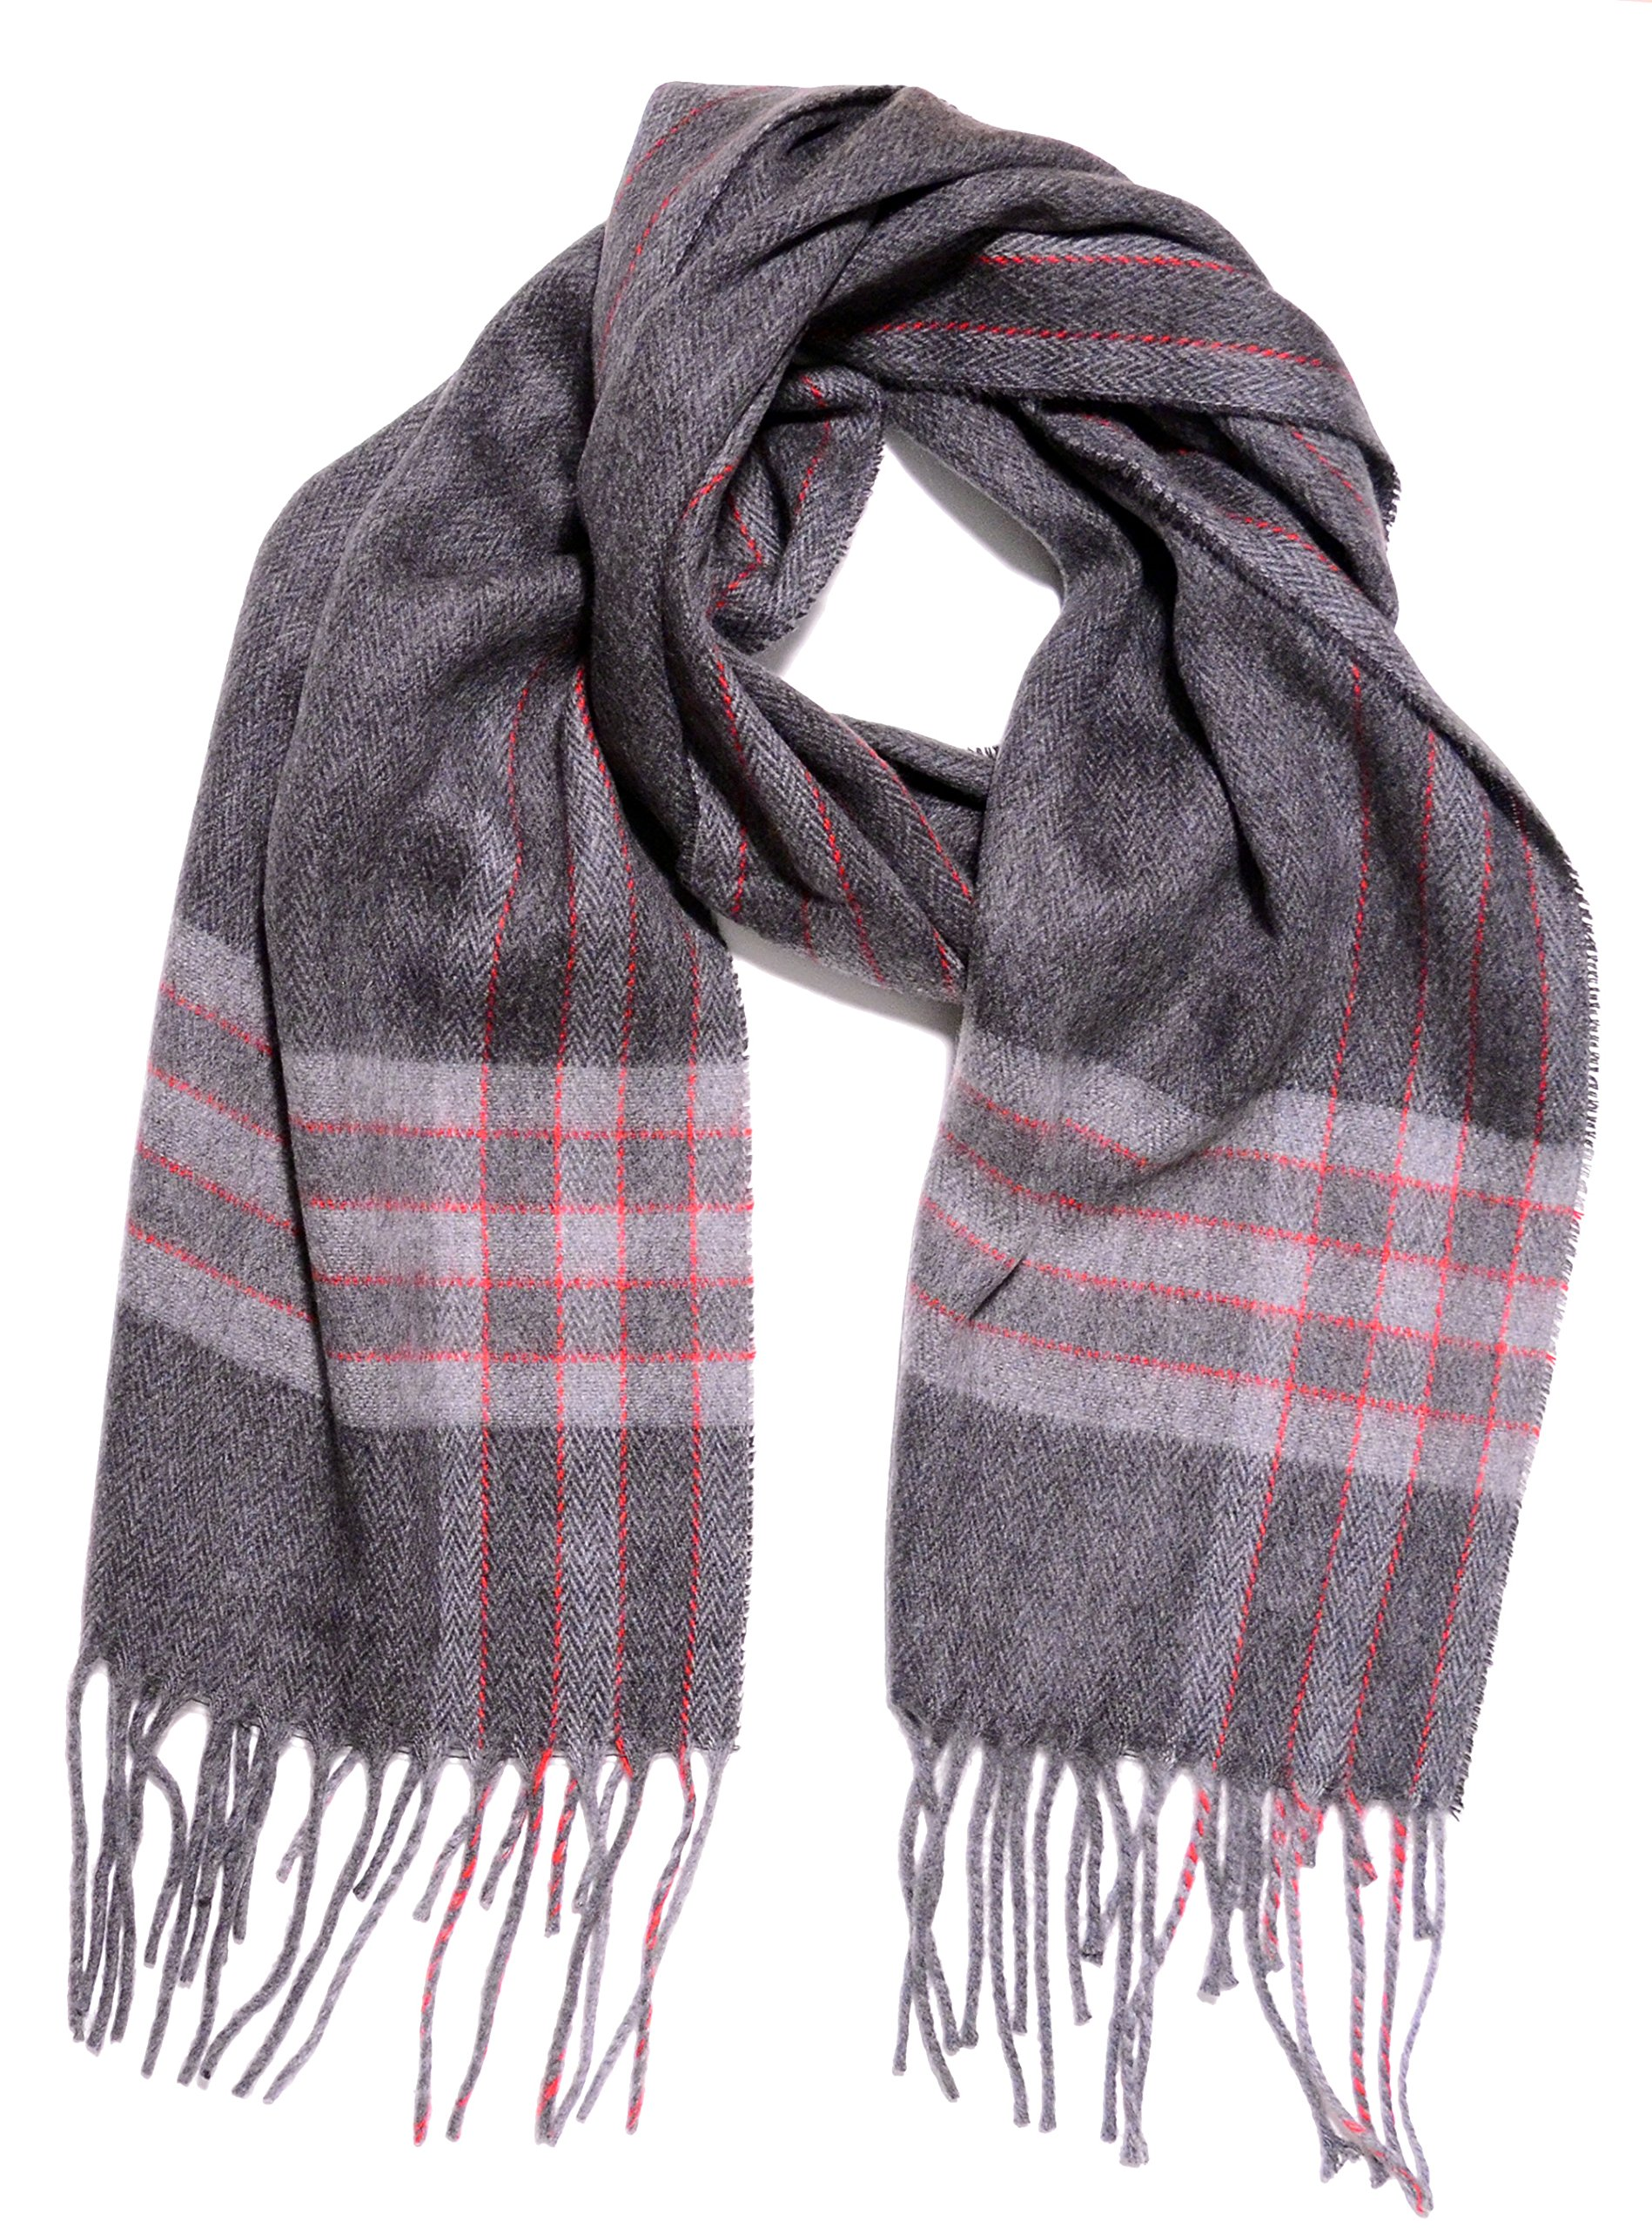 Geoffrey Beene Fashion Pattern Woven Scarf Made in Italy Cashme Mid Grey